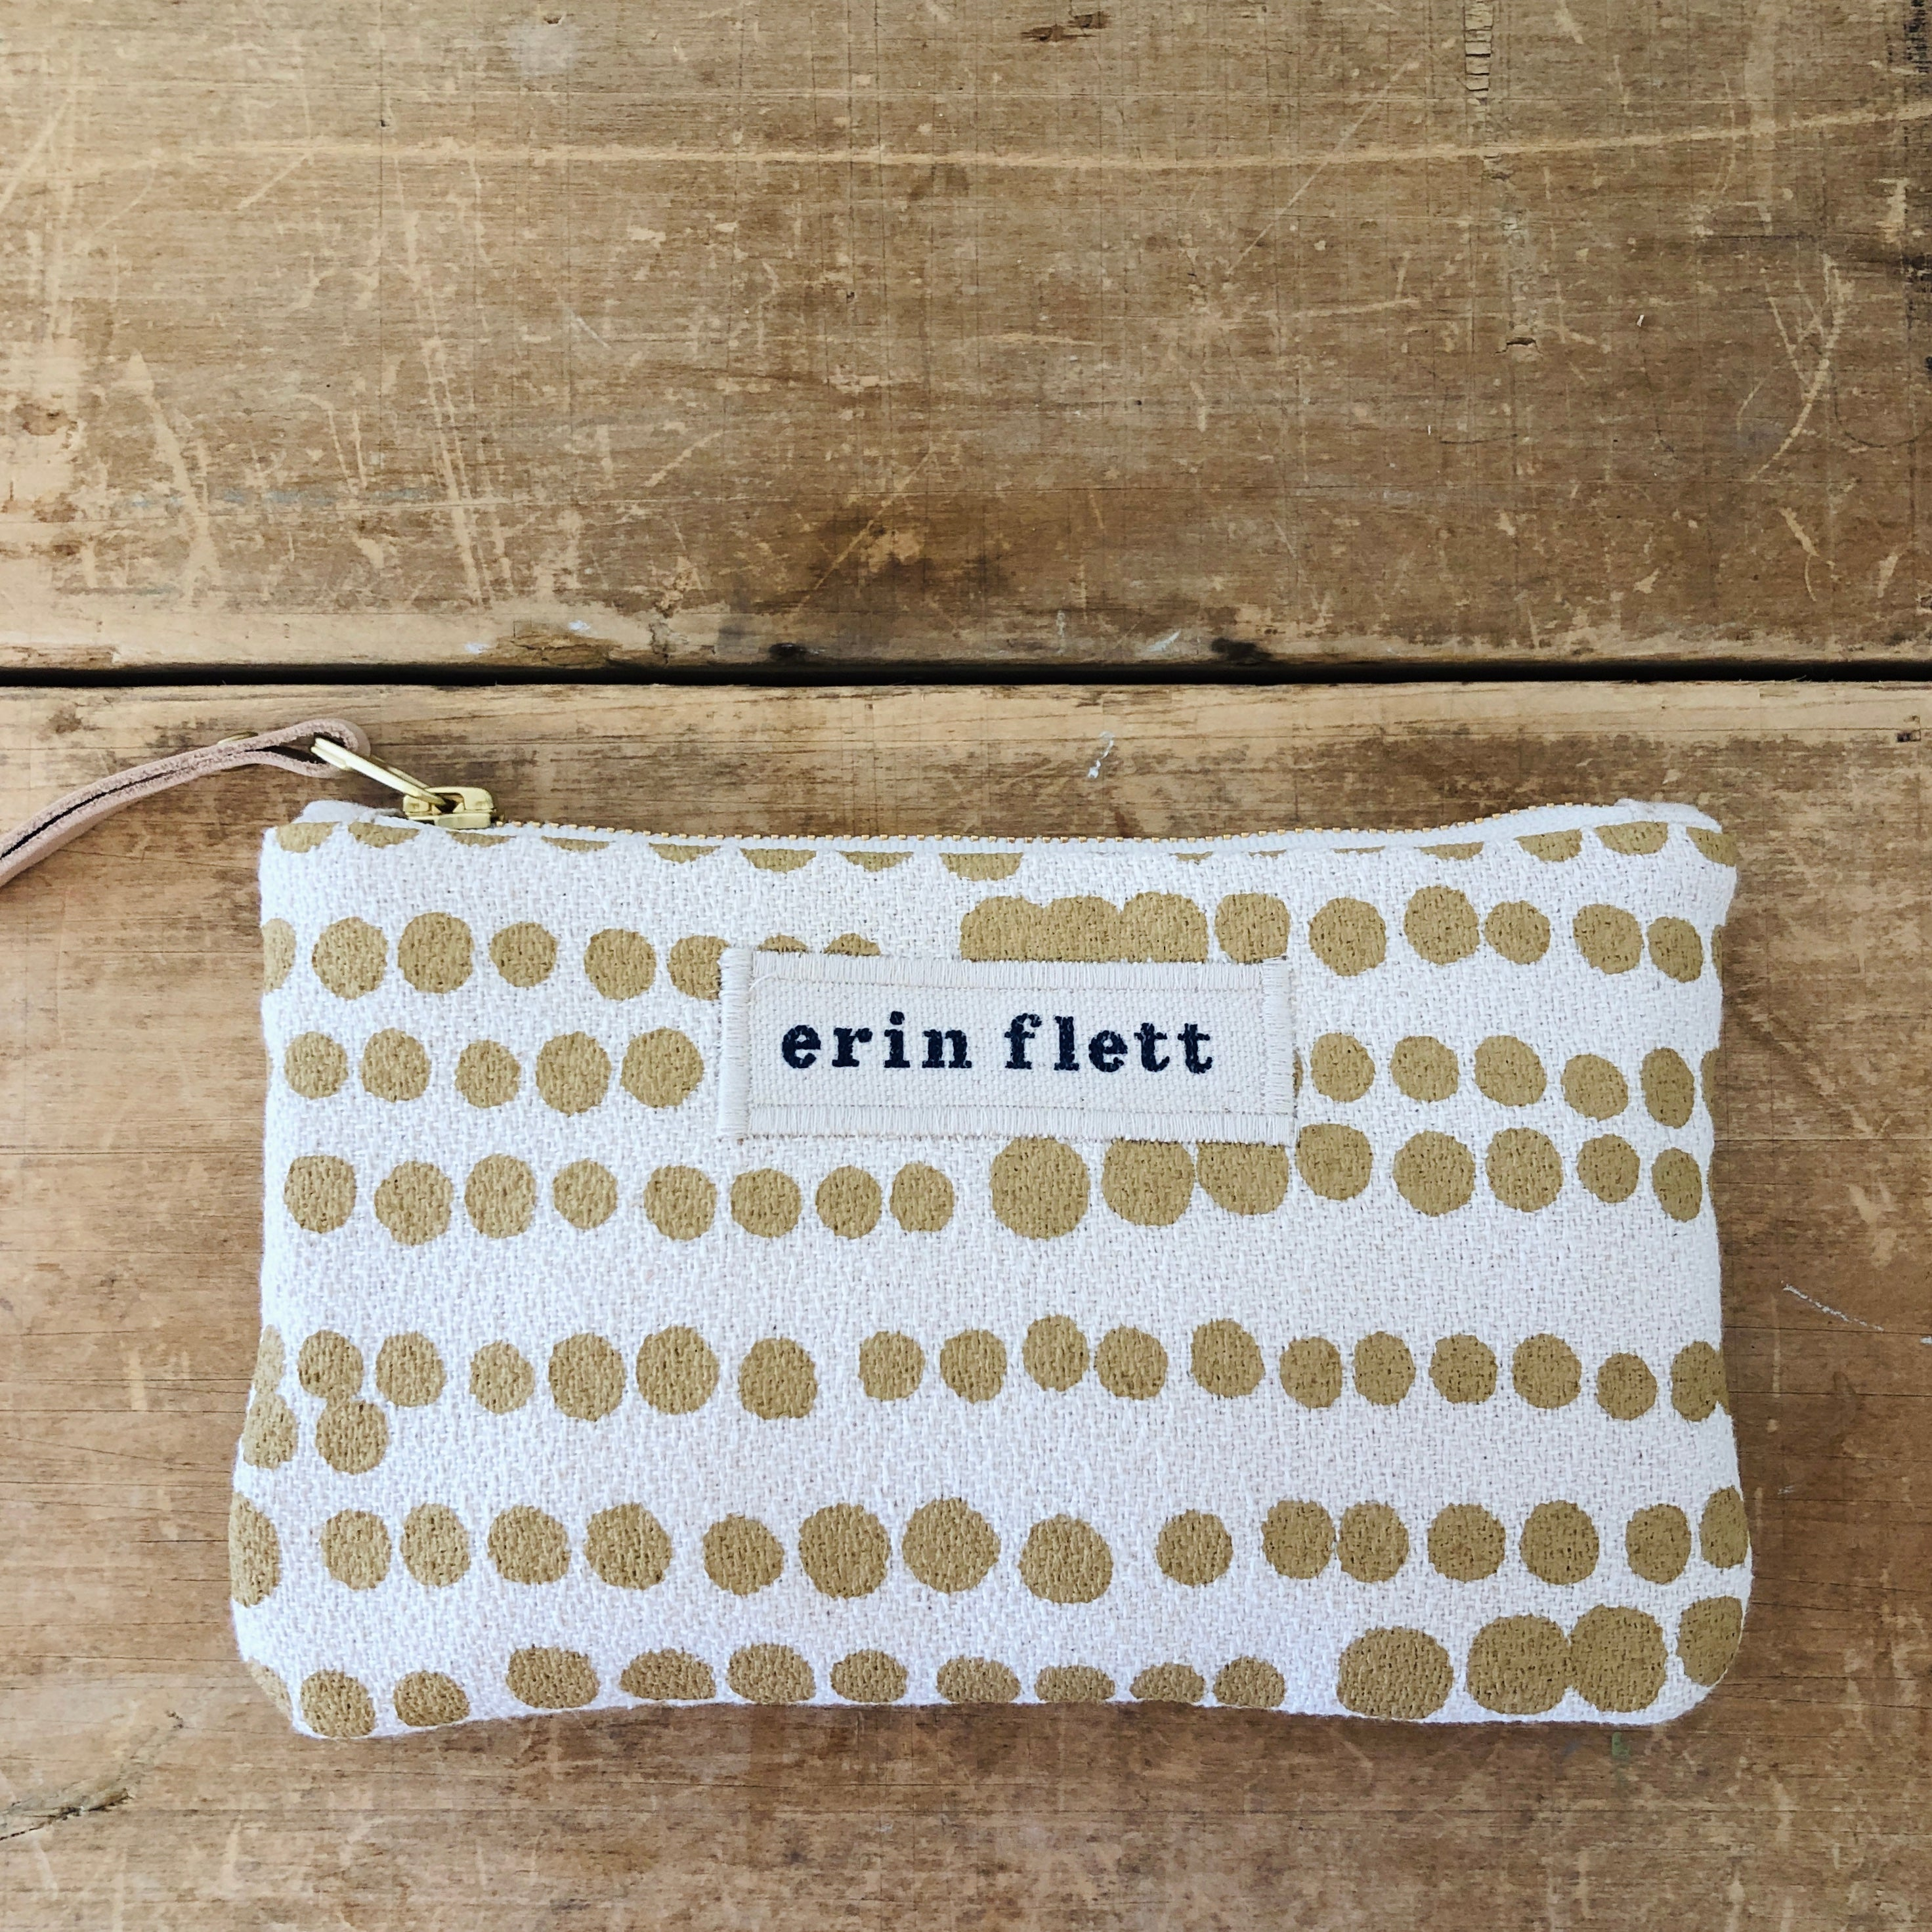 SAND HILARY CARD WALLET ZIPPER BAG